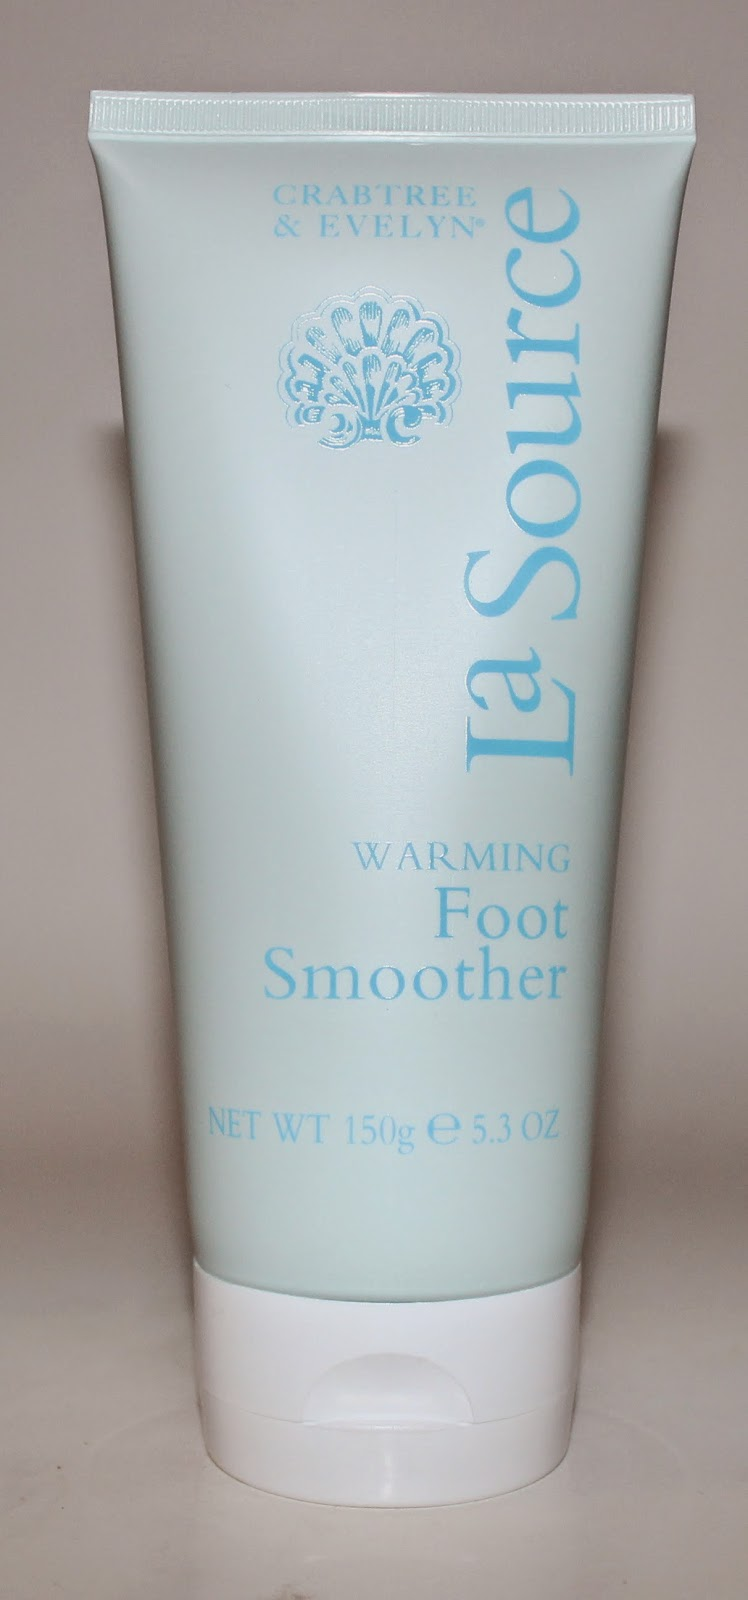 Crabtree & Evelyn Warming Foot Smoother